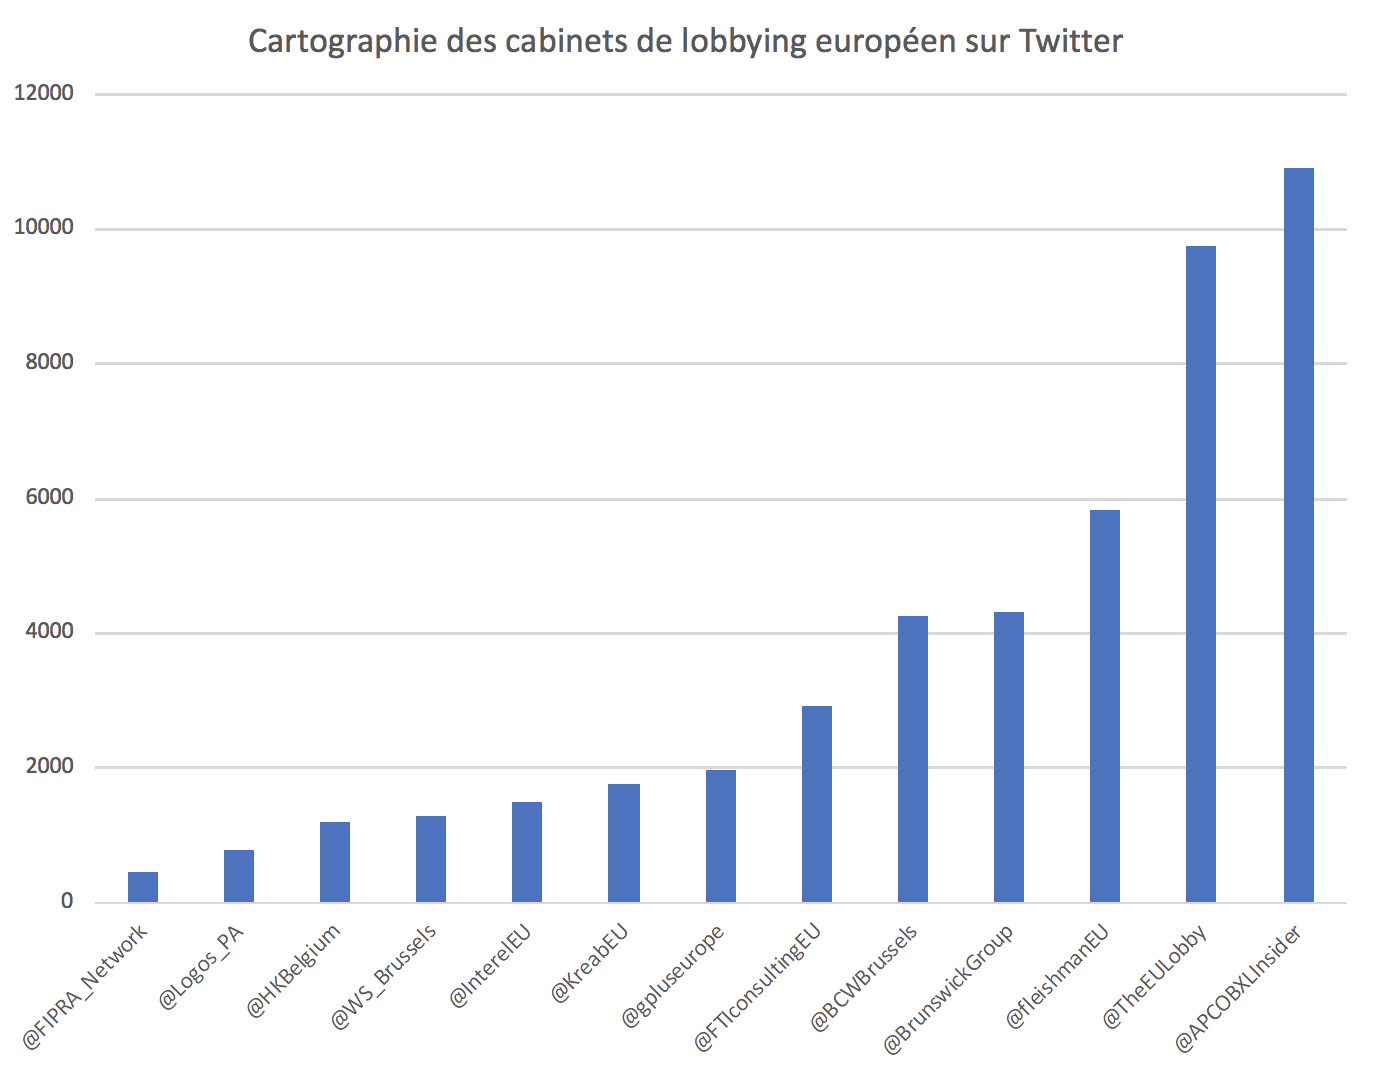 cabinets_lobbying_europe_twitter